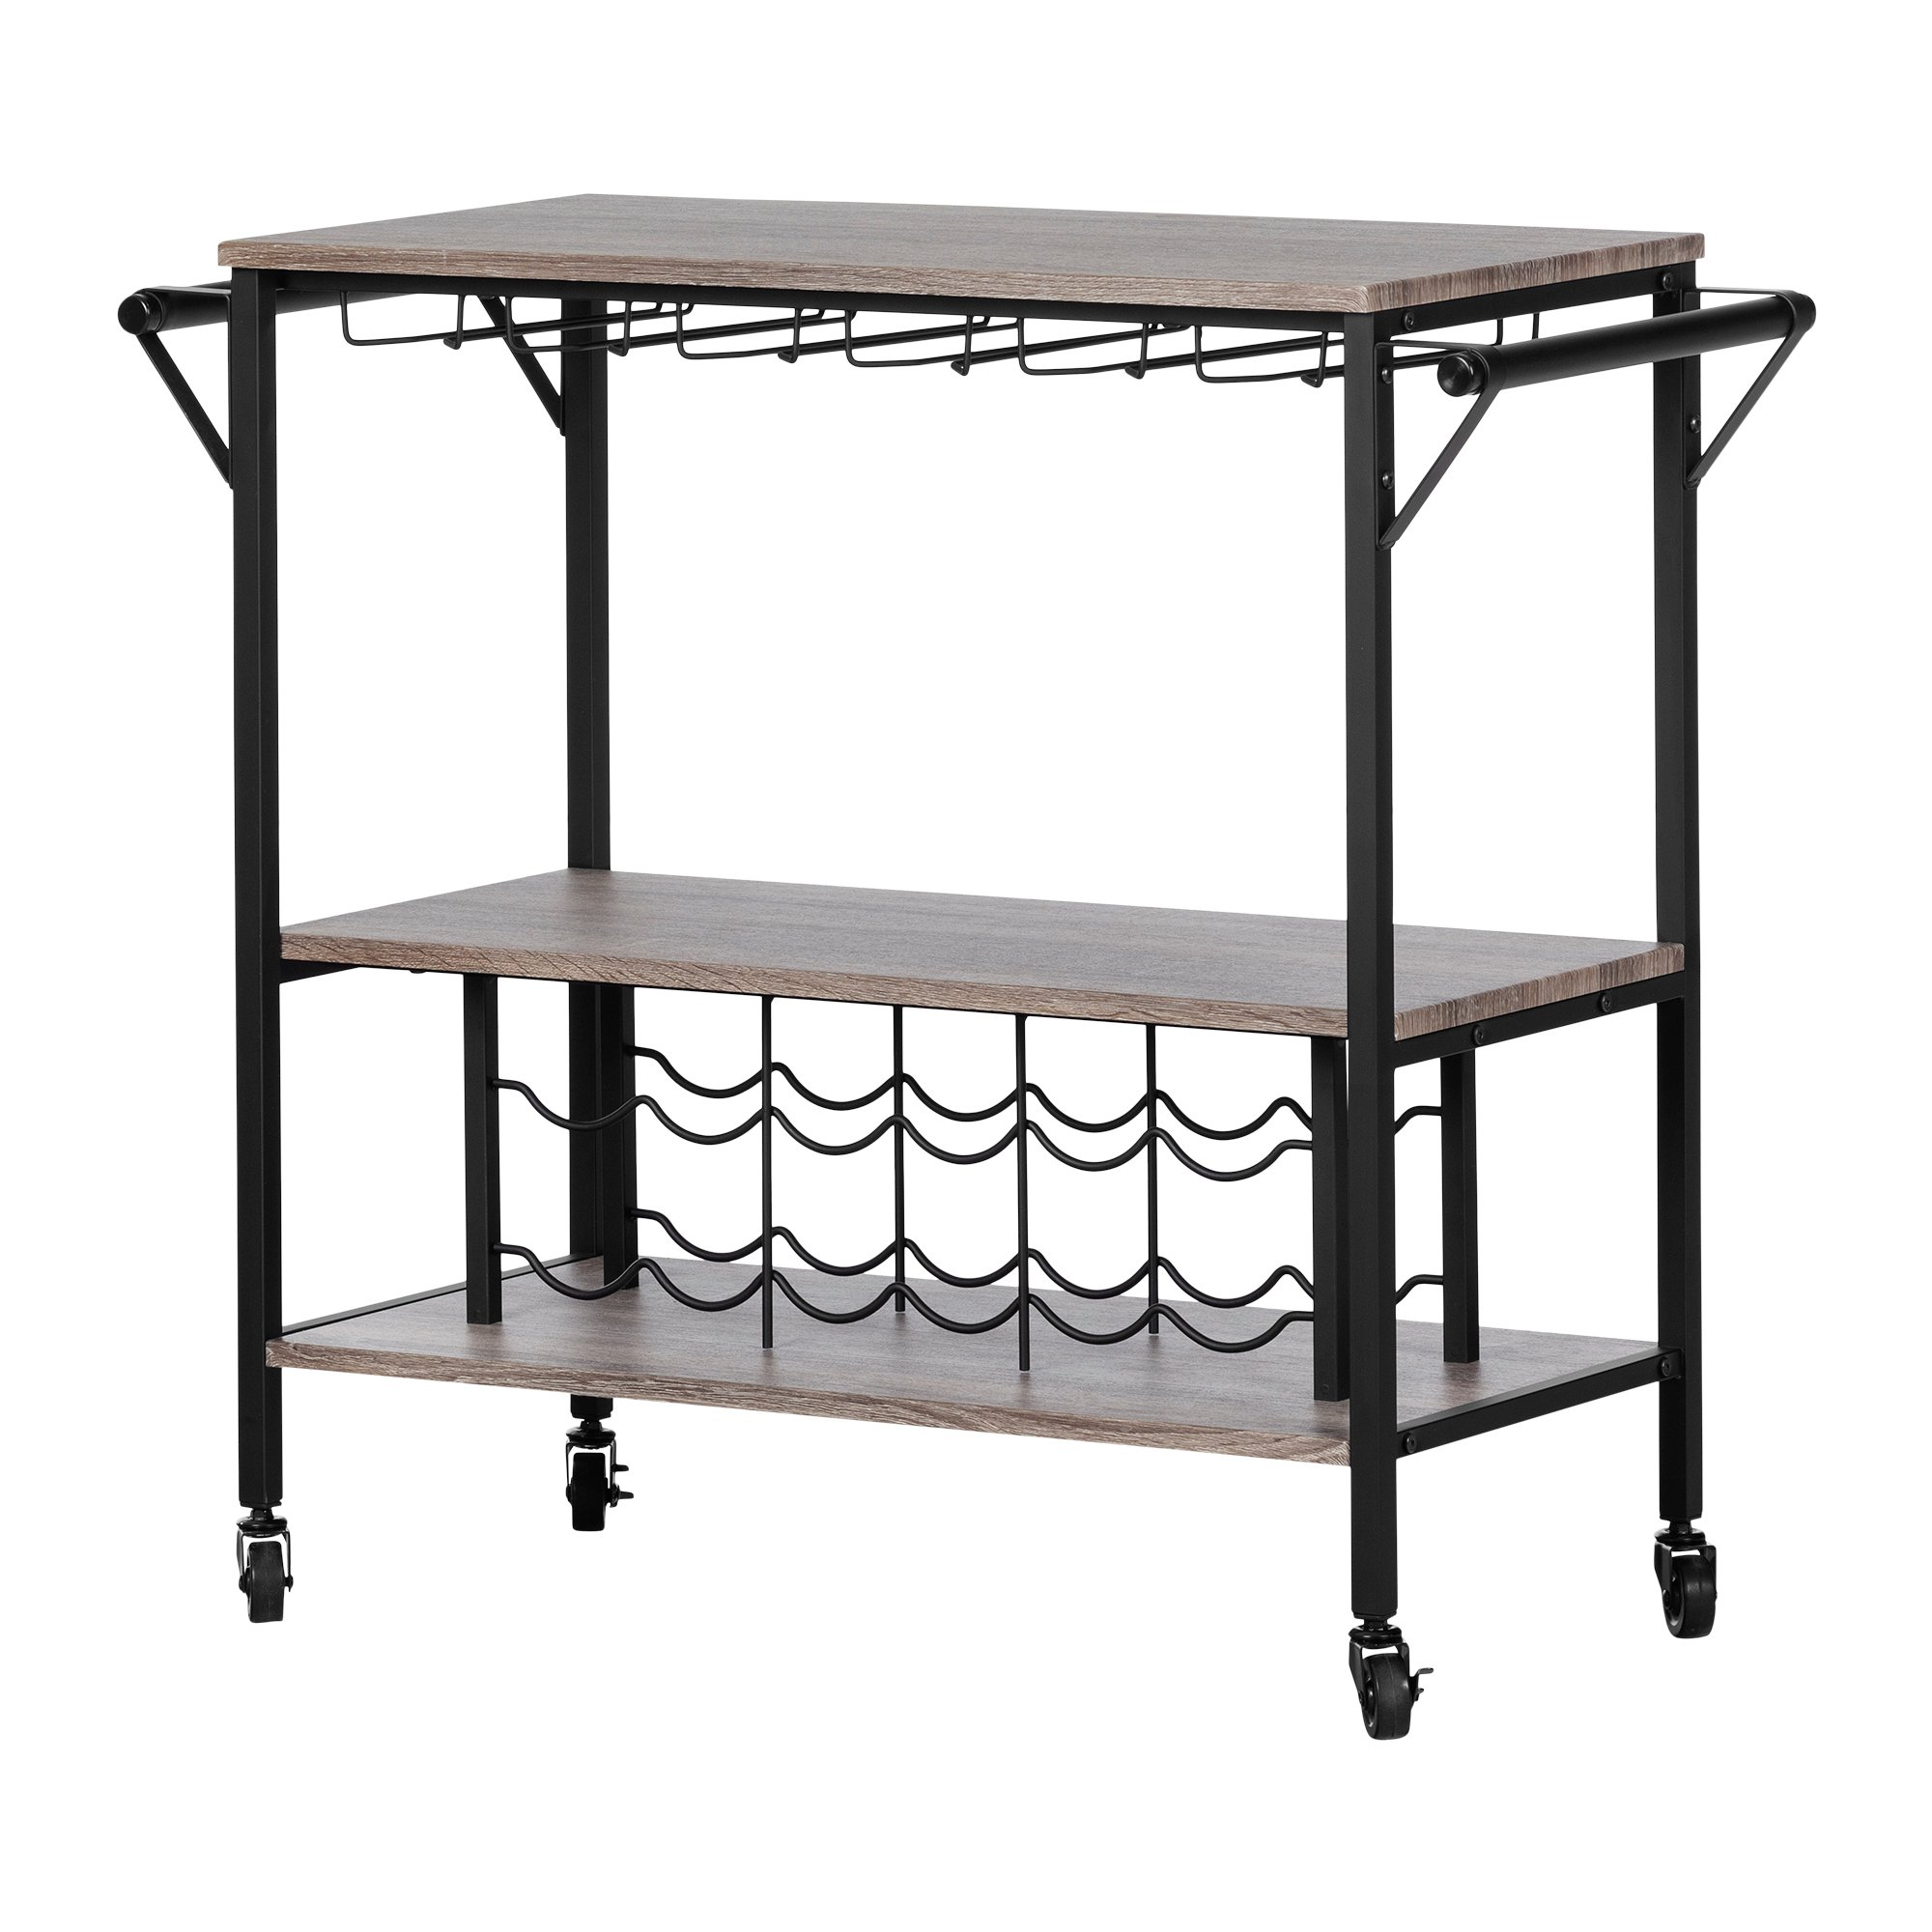 South Shore 12069 Munich Bar Cart with Wine Rack, Weathered Oak and Matte Black by South Shore